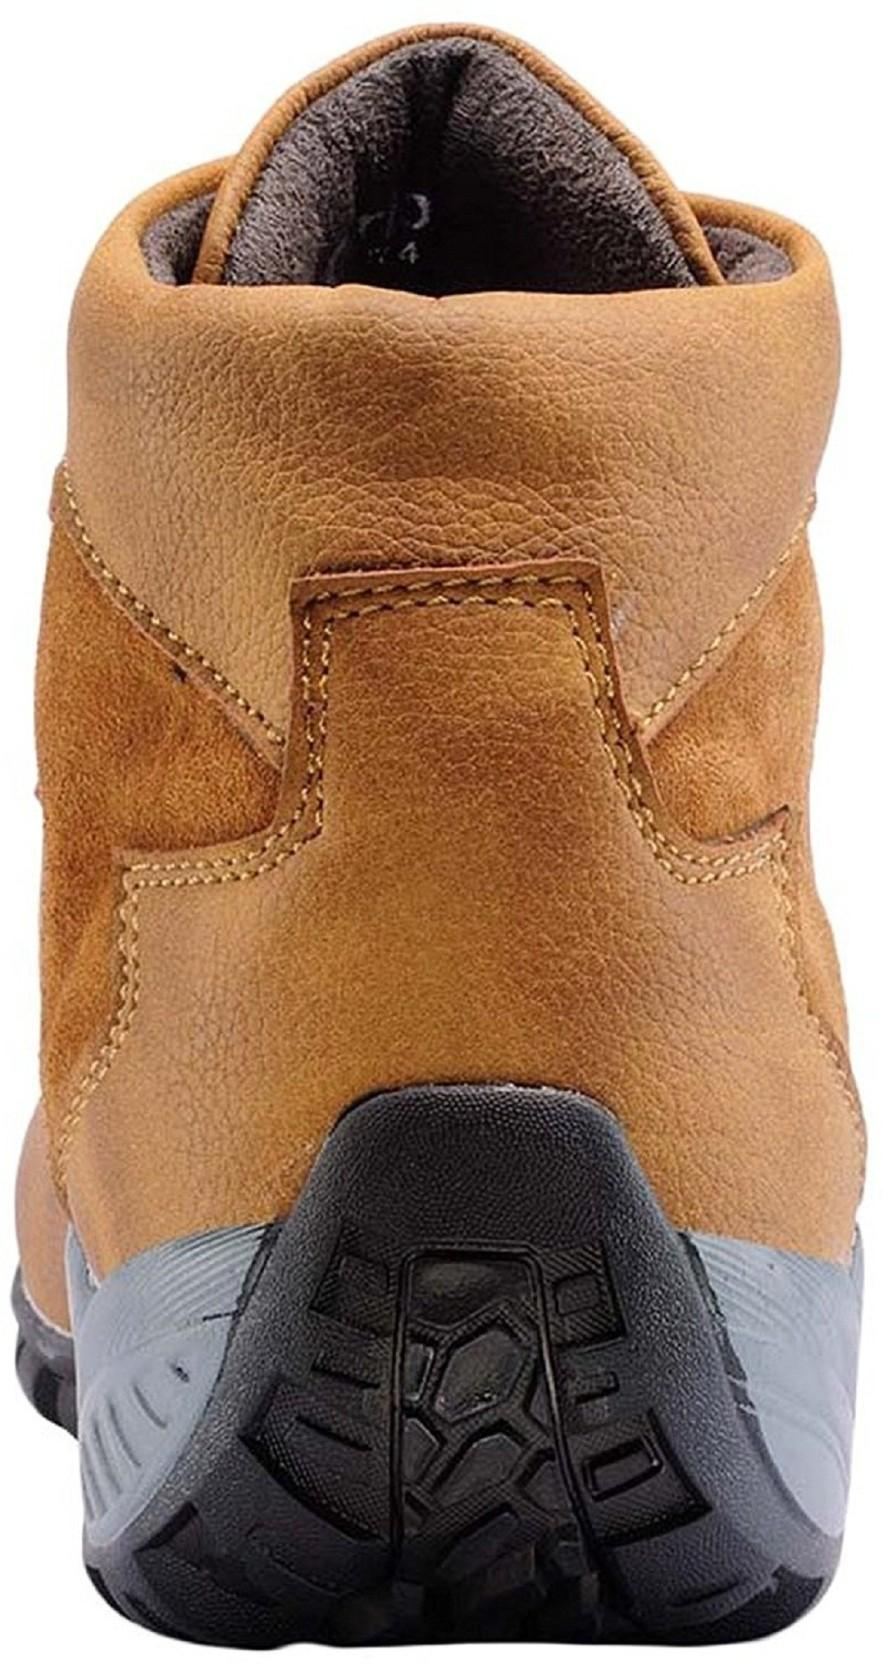 Deals4you Men's Synthetic Leather Tan Casual Shoes Boots, Casuals(Tan)